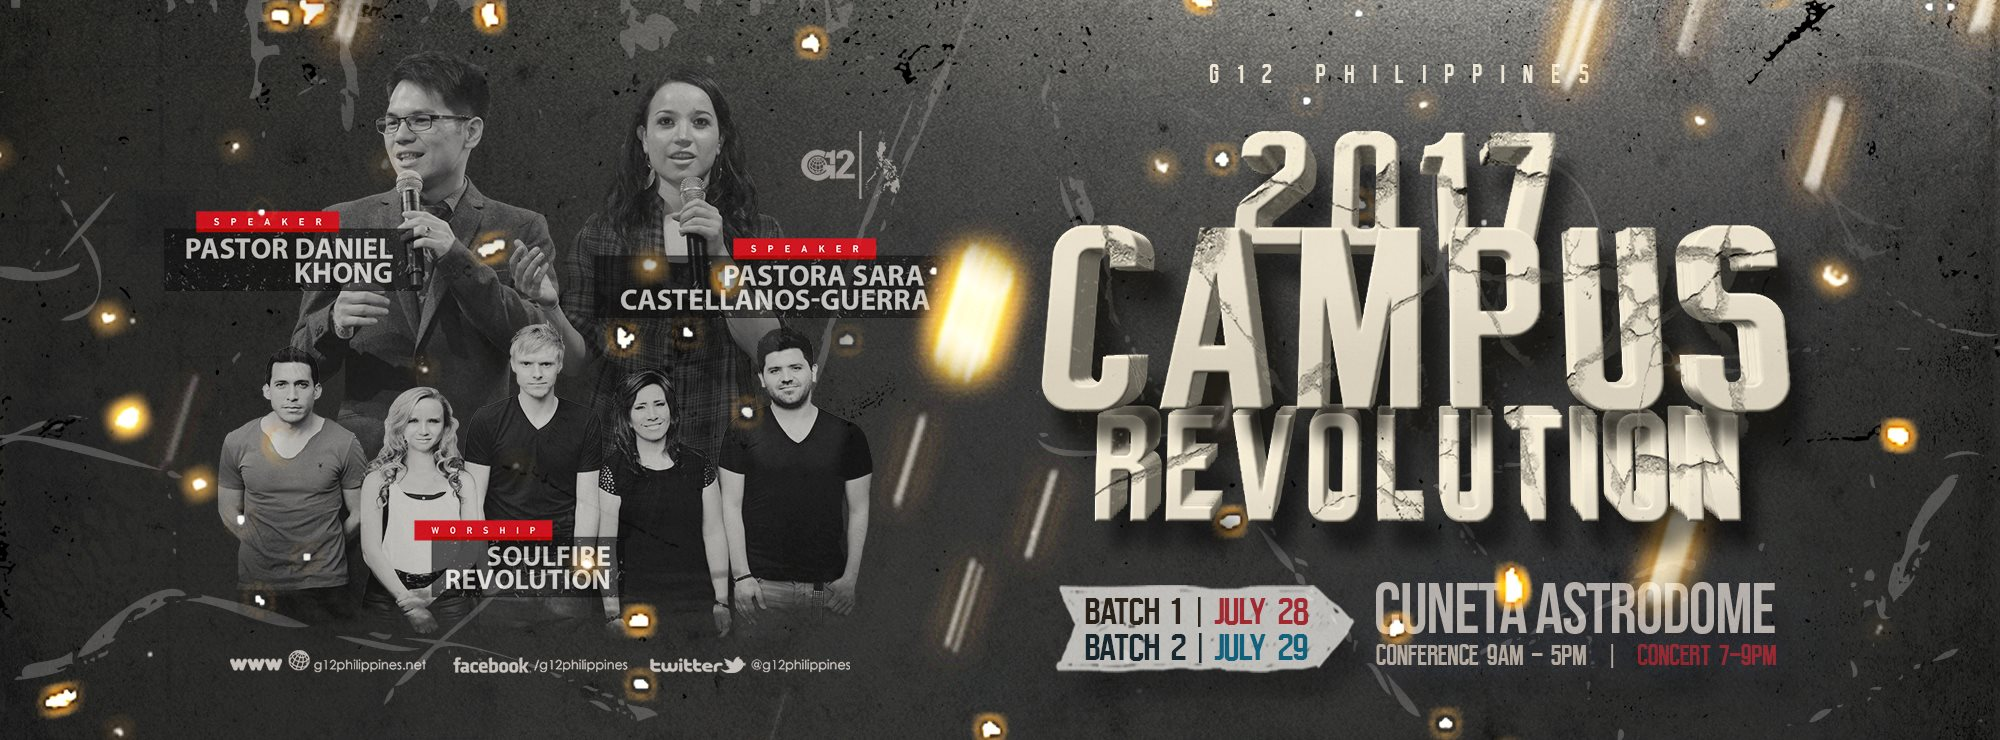 G12PH 2017 Campus Revolution